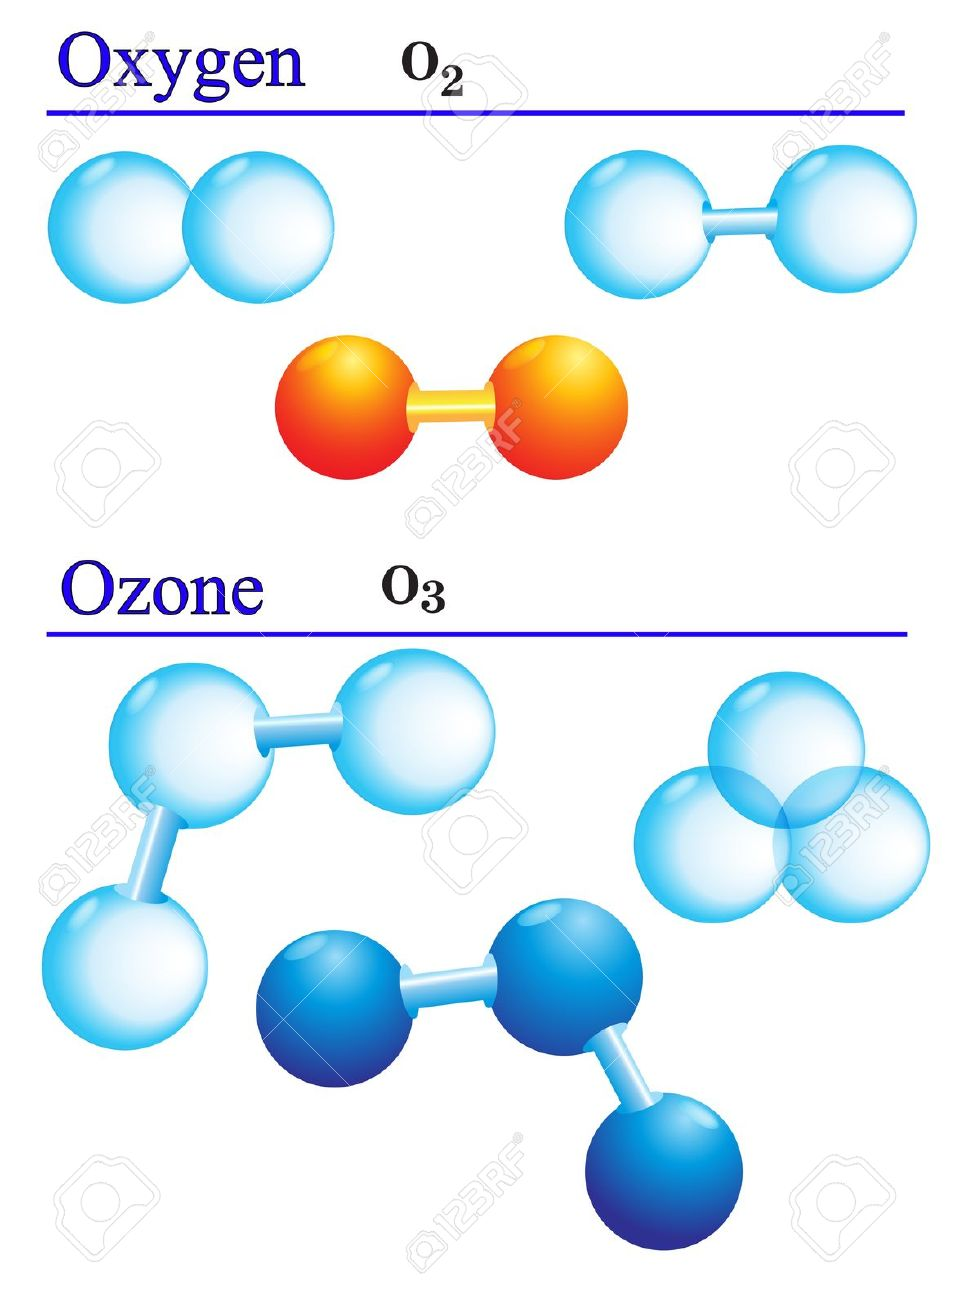 3,649 Ozone Stock Vector Illustration And Royalty Free Ozone Clipart.